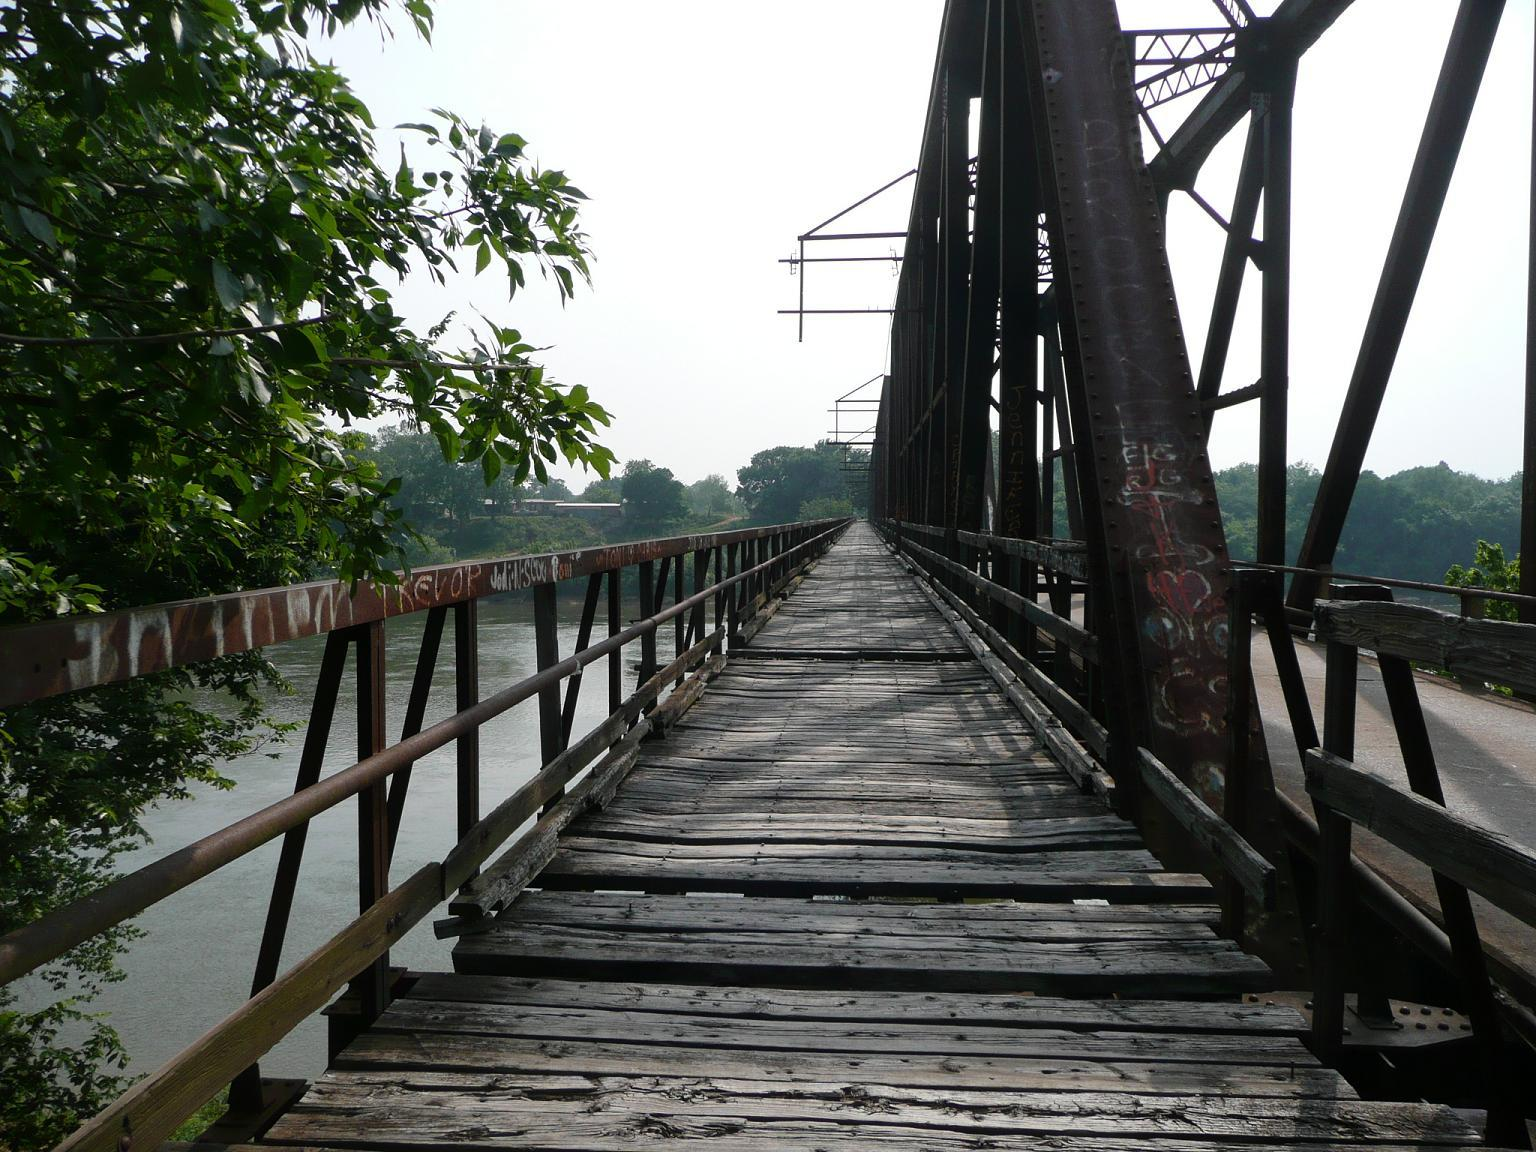 This photo shows the reason the wooden walkway was closed years ago. Its now many missing wooden planks create a major safety hazard to visitors.